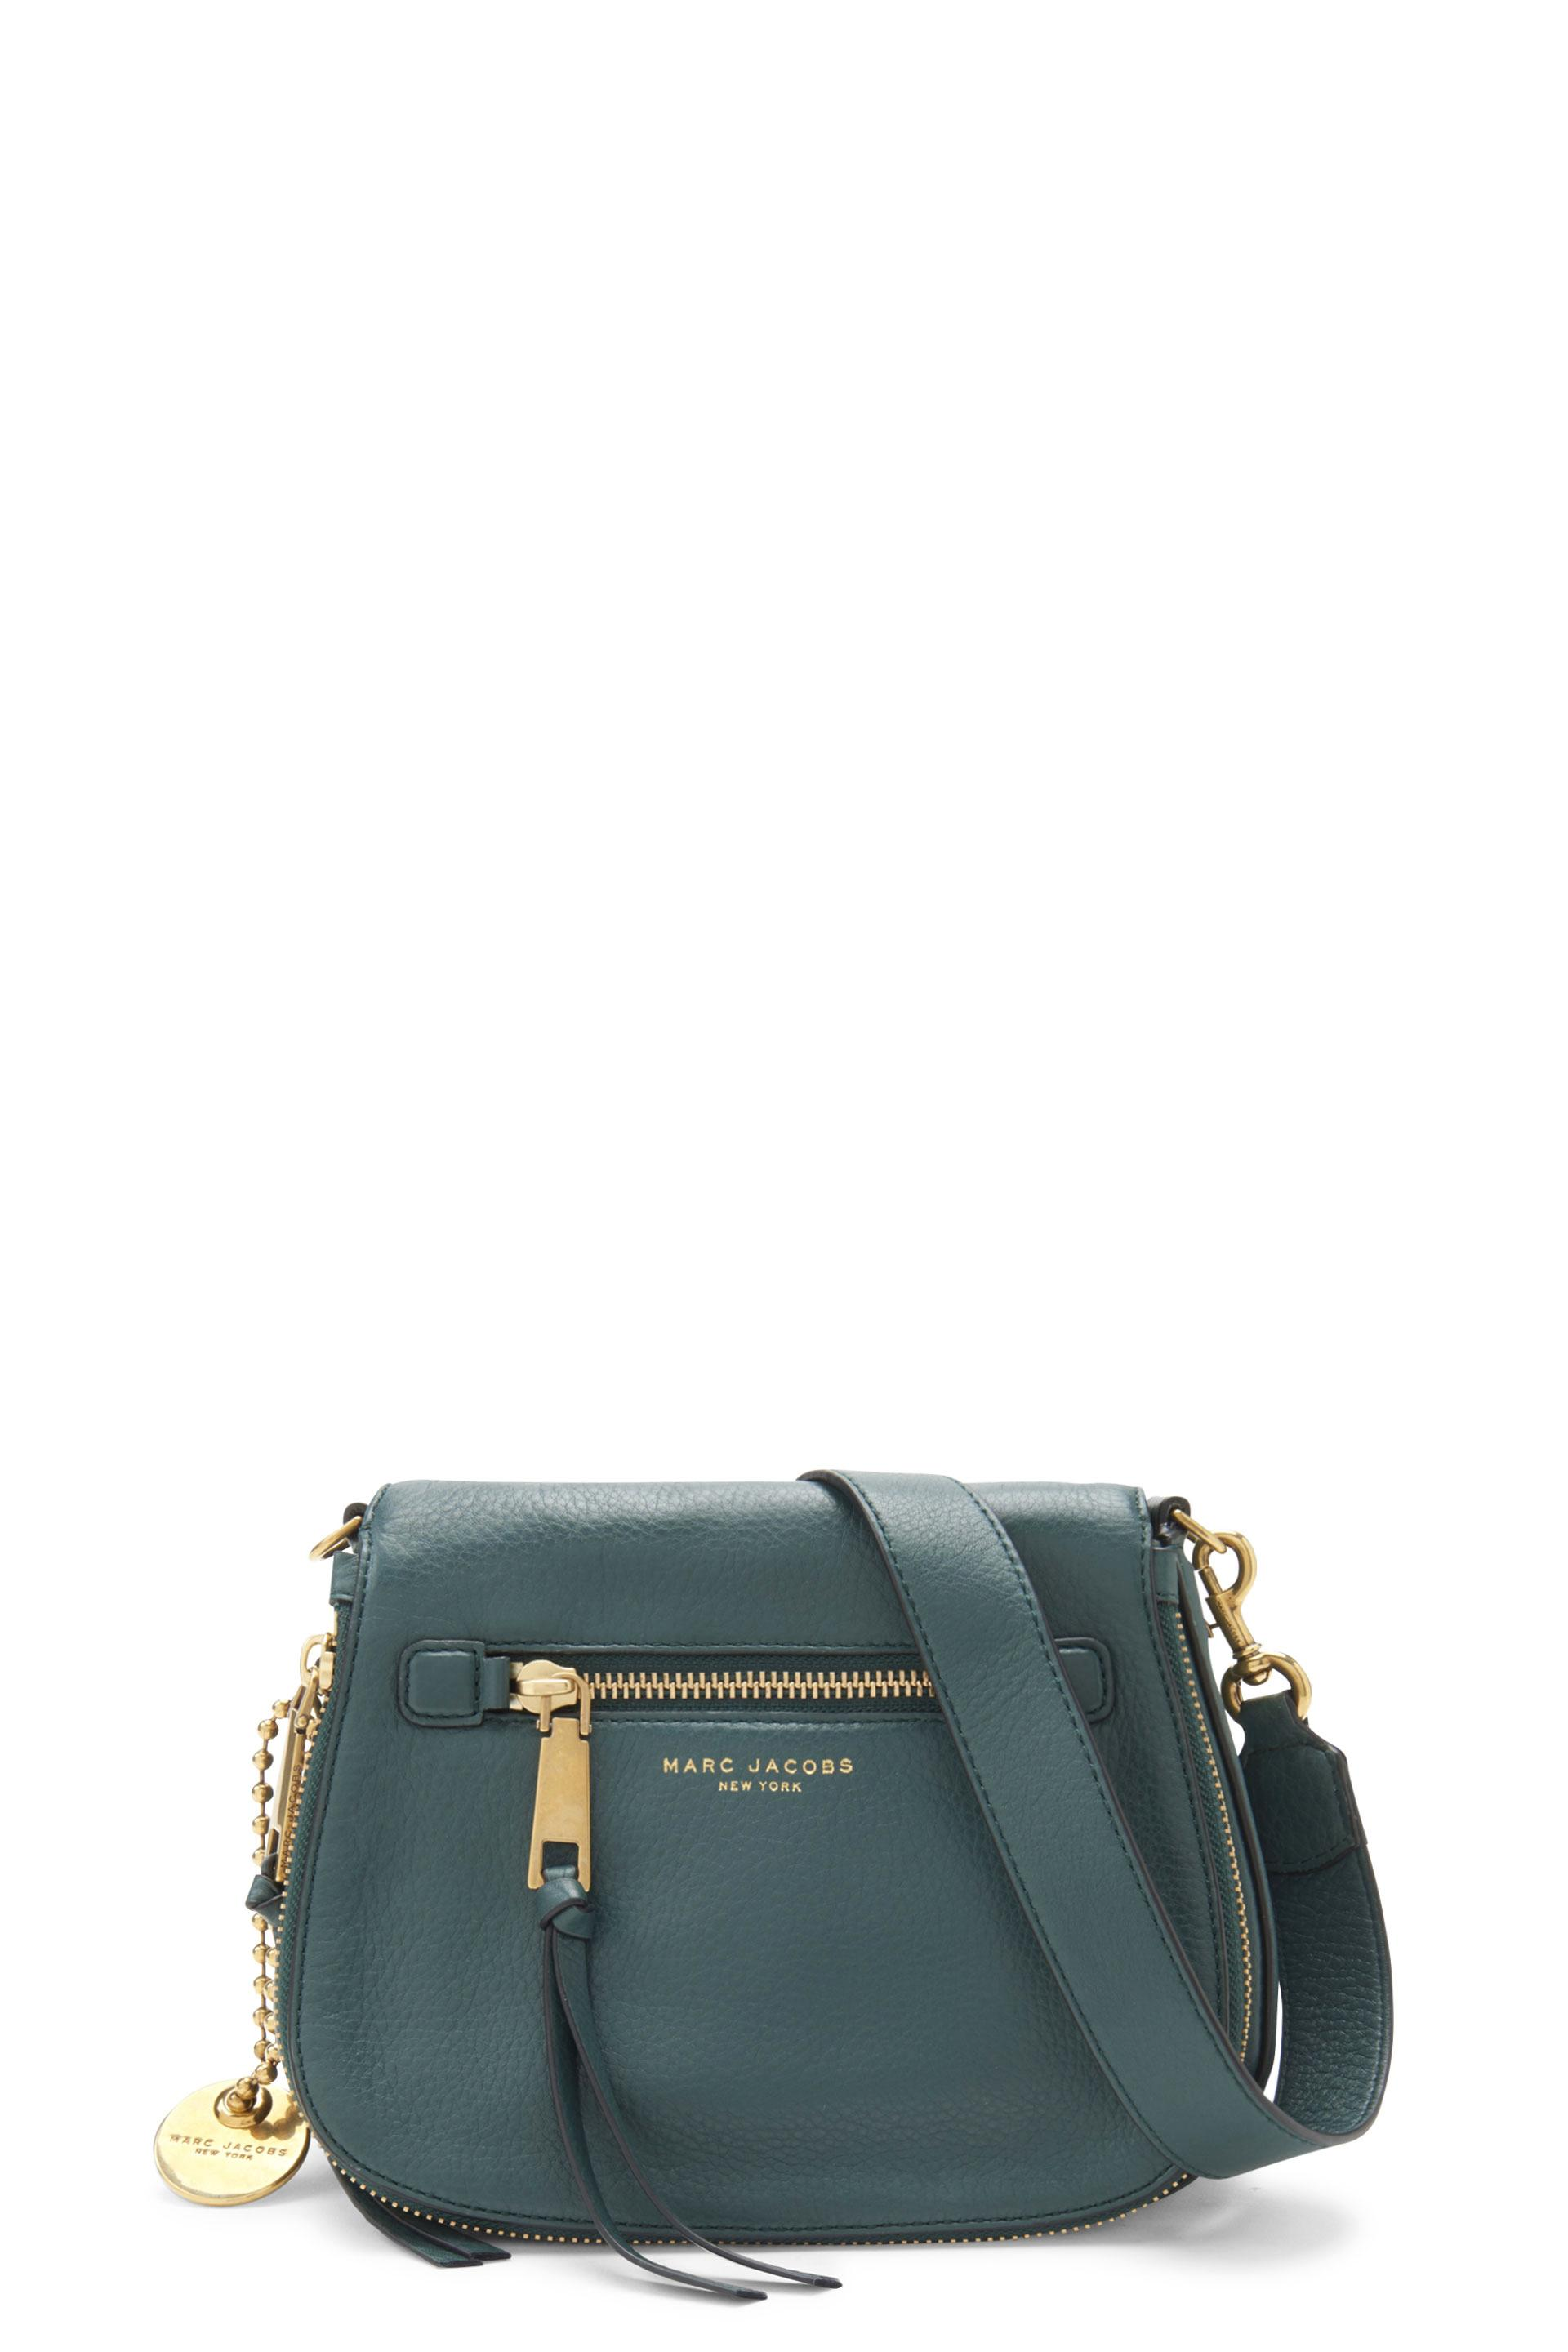 b3b6d18e001162 Marc Jacobs Recruit Small Leather Saddle Bag, Teal In Green Jewel ...